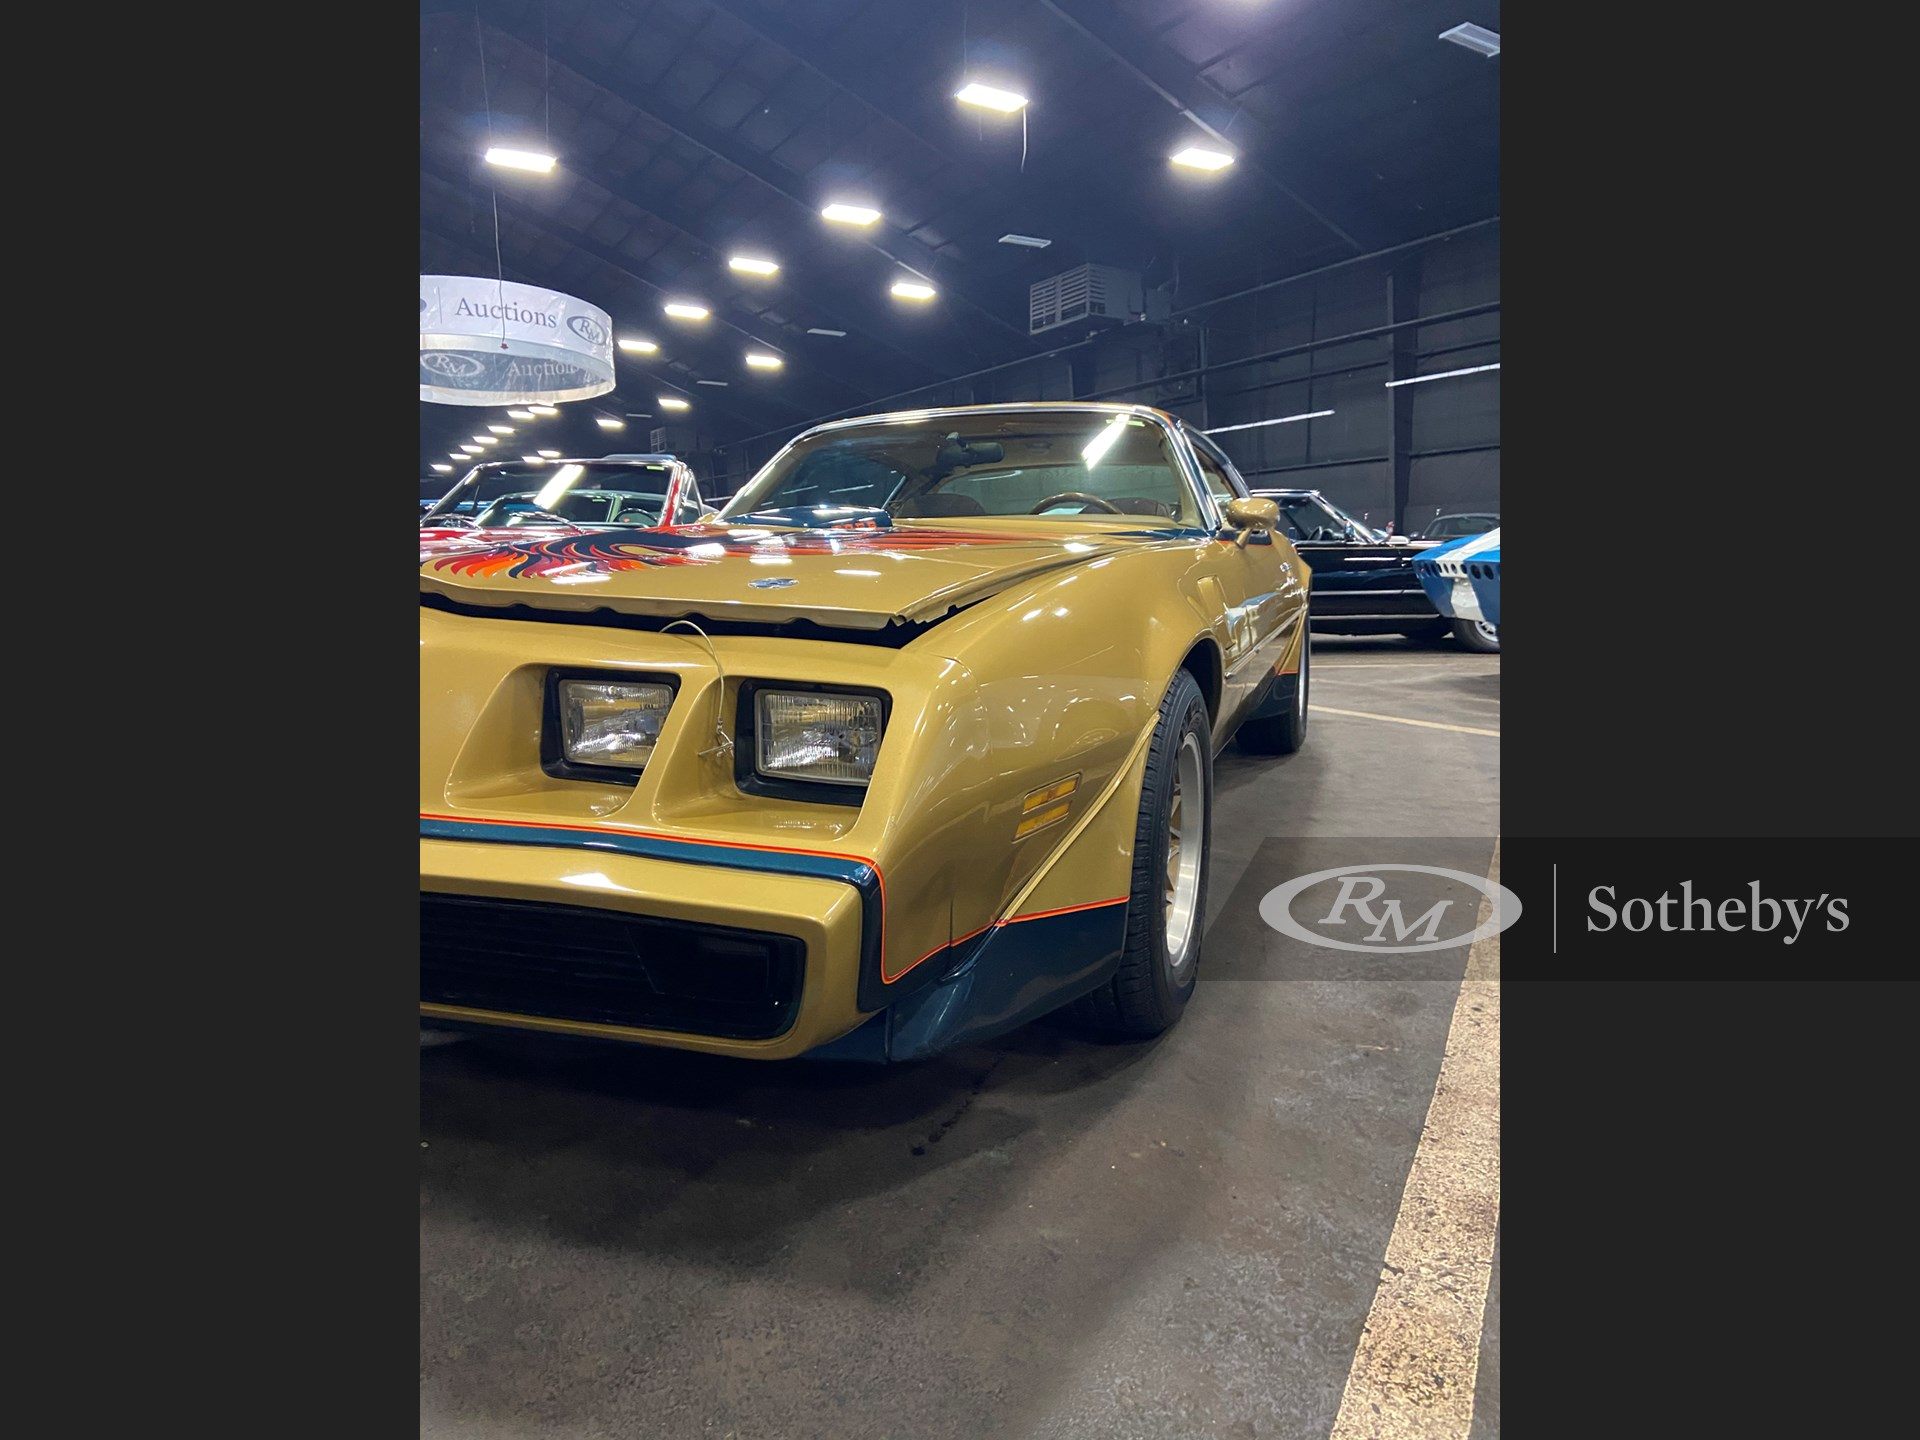 1979 Pontiac Macho Trans Am by DKM -